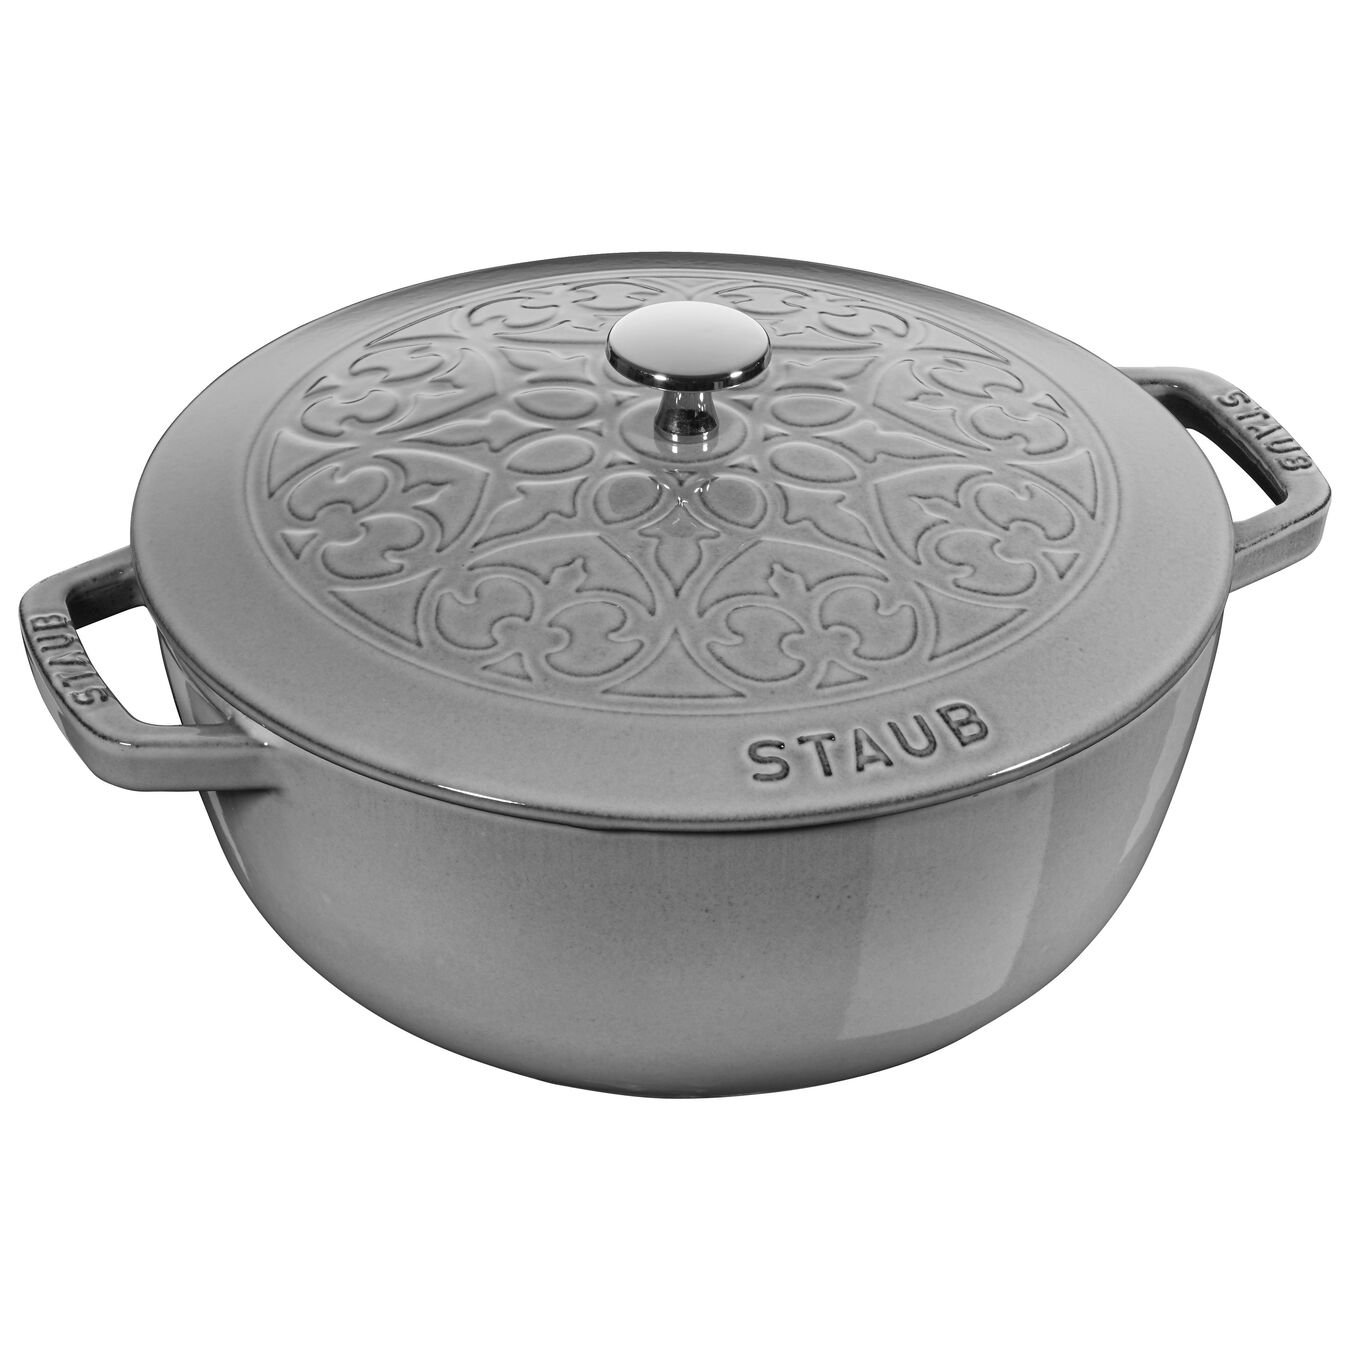 5 l Cast iron round French oven, graphite-grey - Visual Imperfections,,large 1